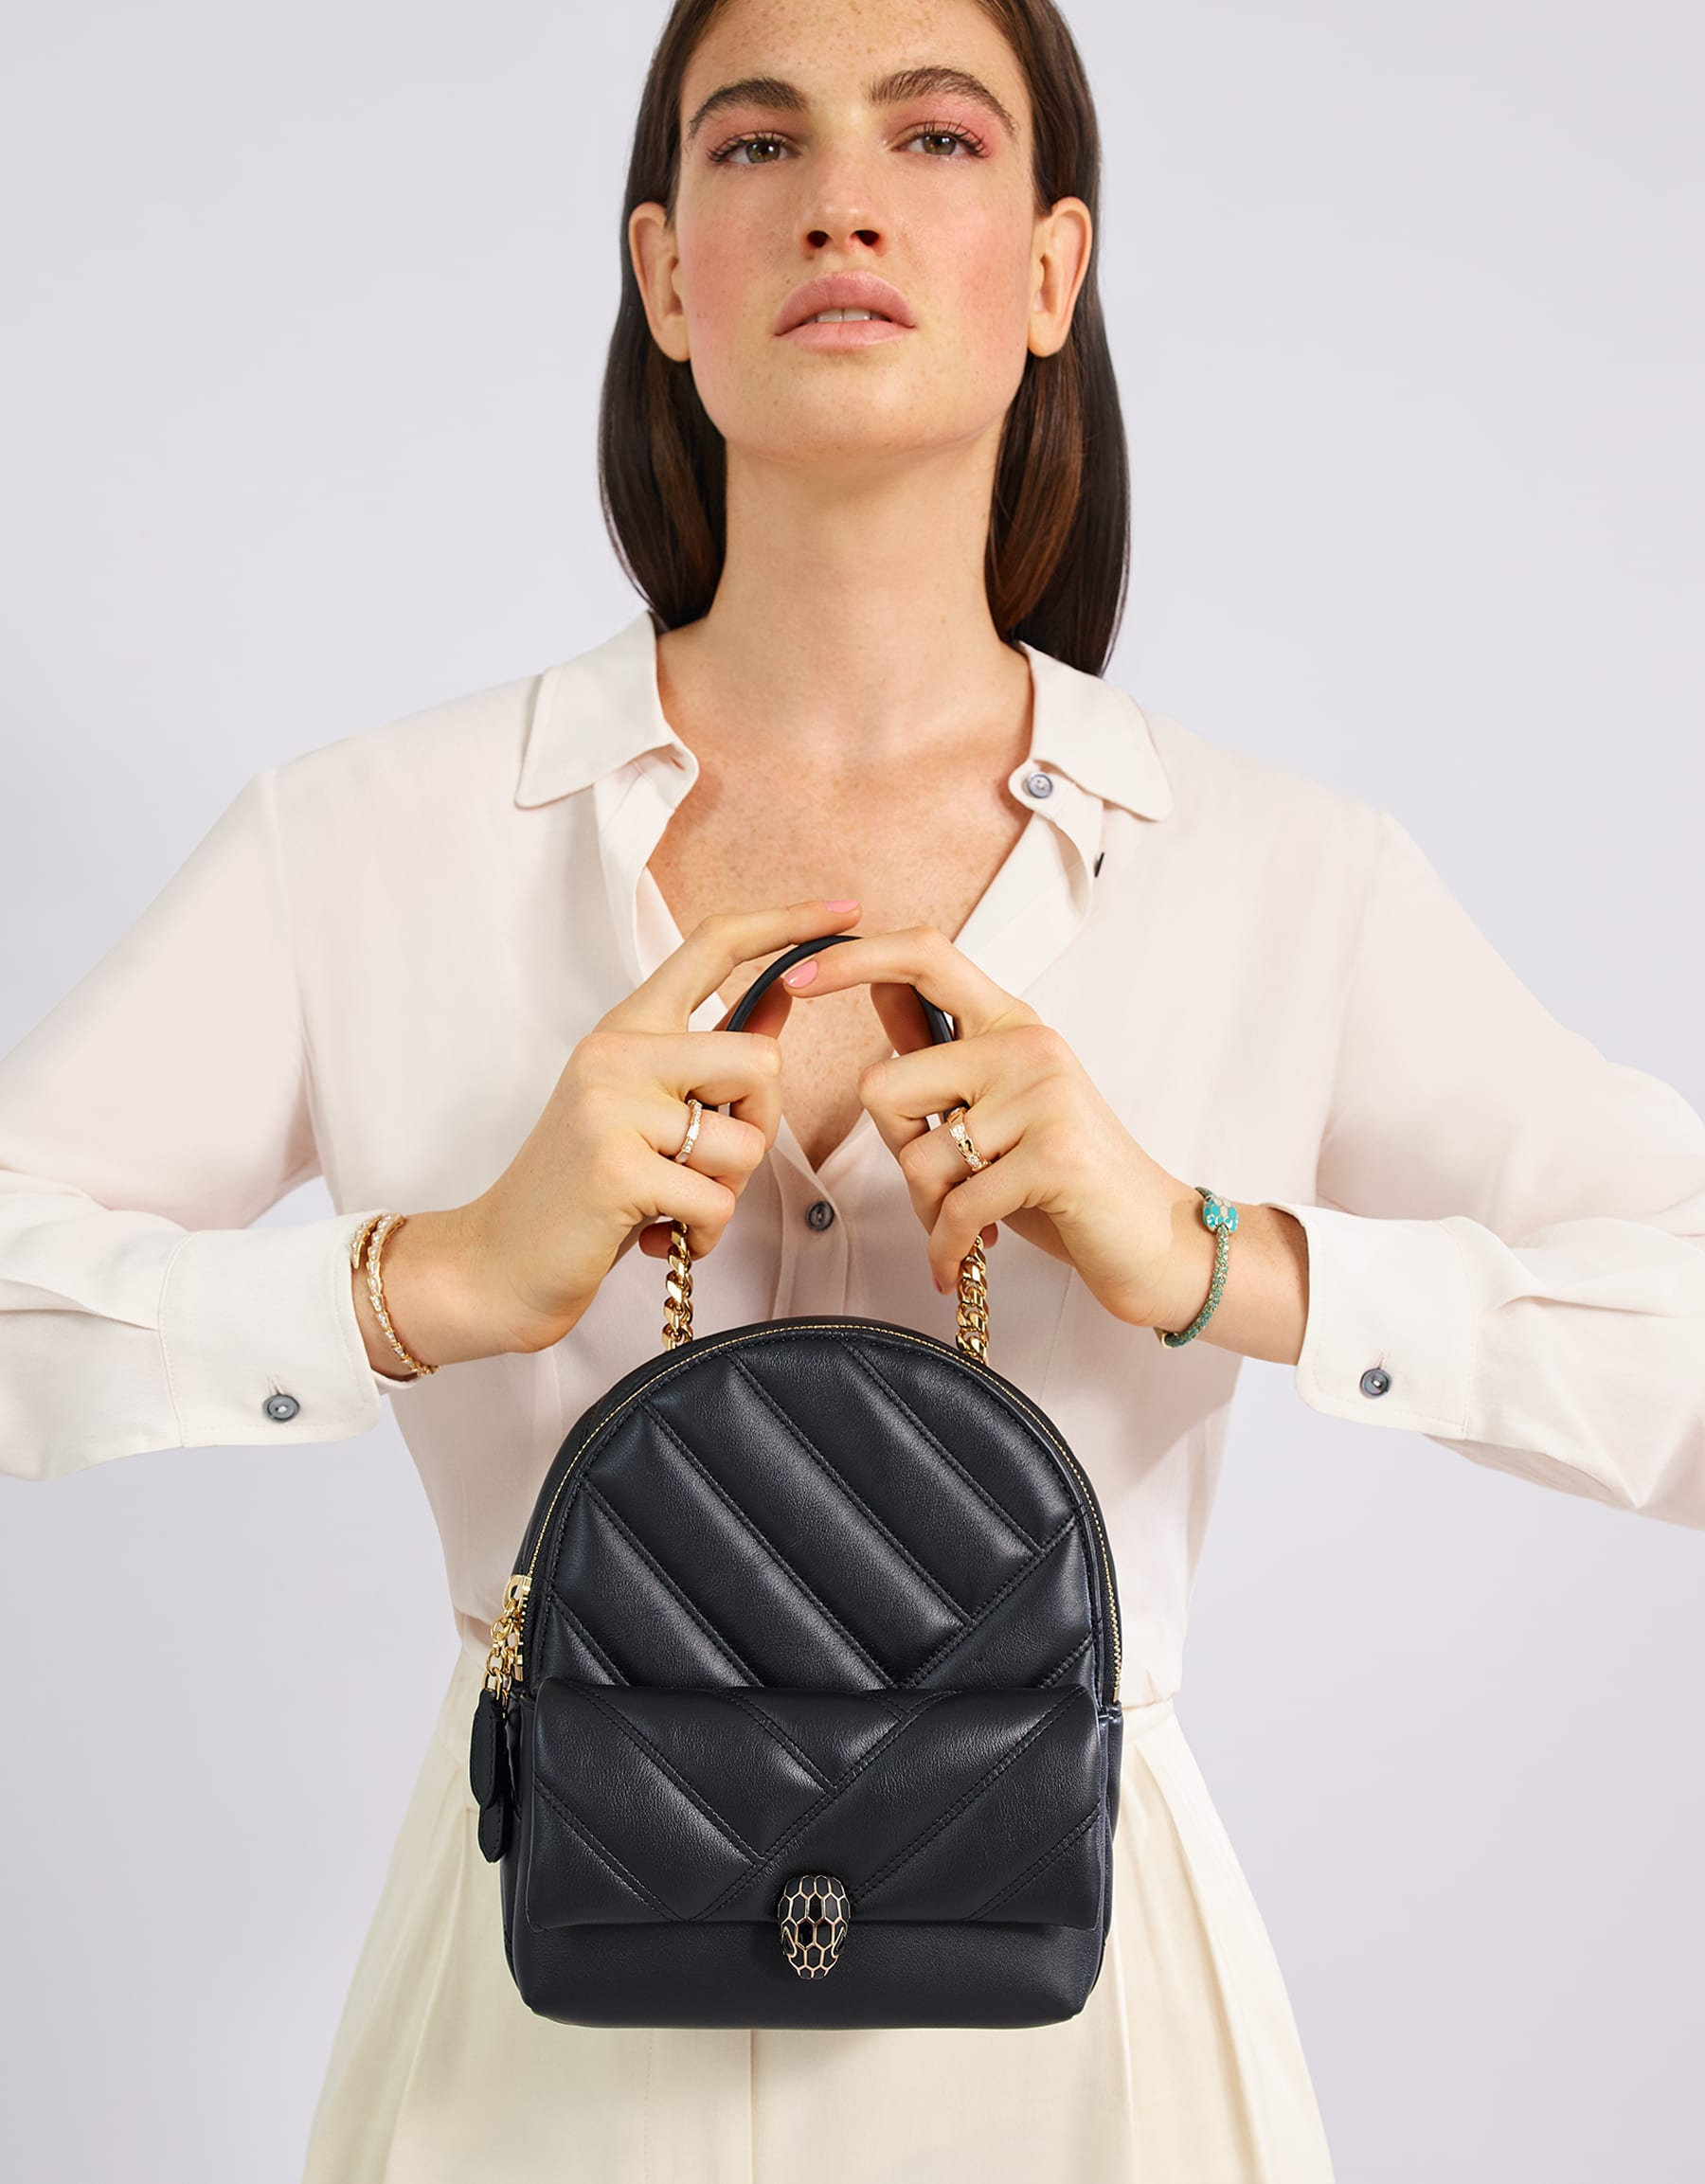 Serpenti Cabochon backpack in soft quilted black calf leather, with a graphic motif. Rose gold plated brass tempting snakehead closure in matte and shiny black enamel and black onyx eyes. 288735 image 6